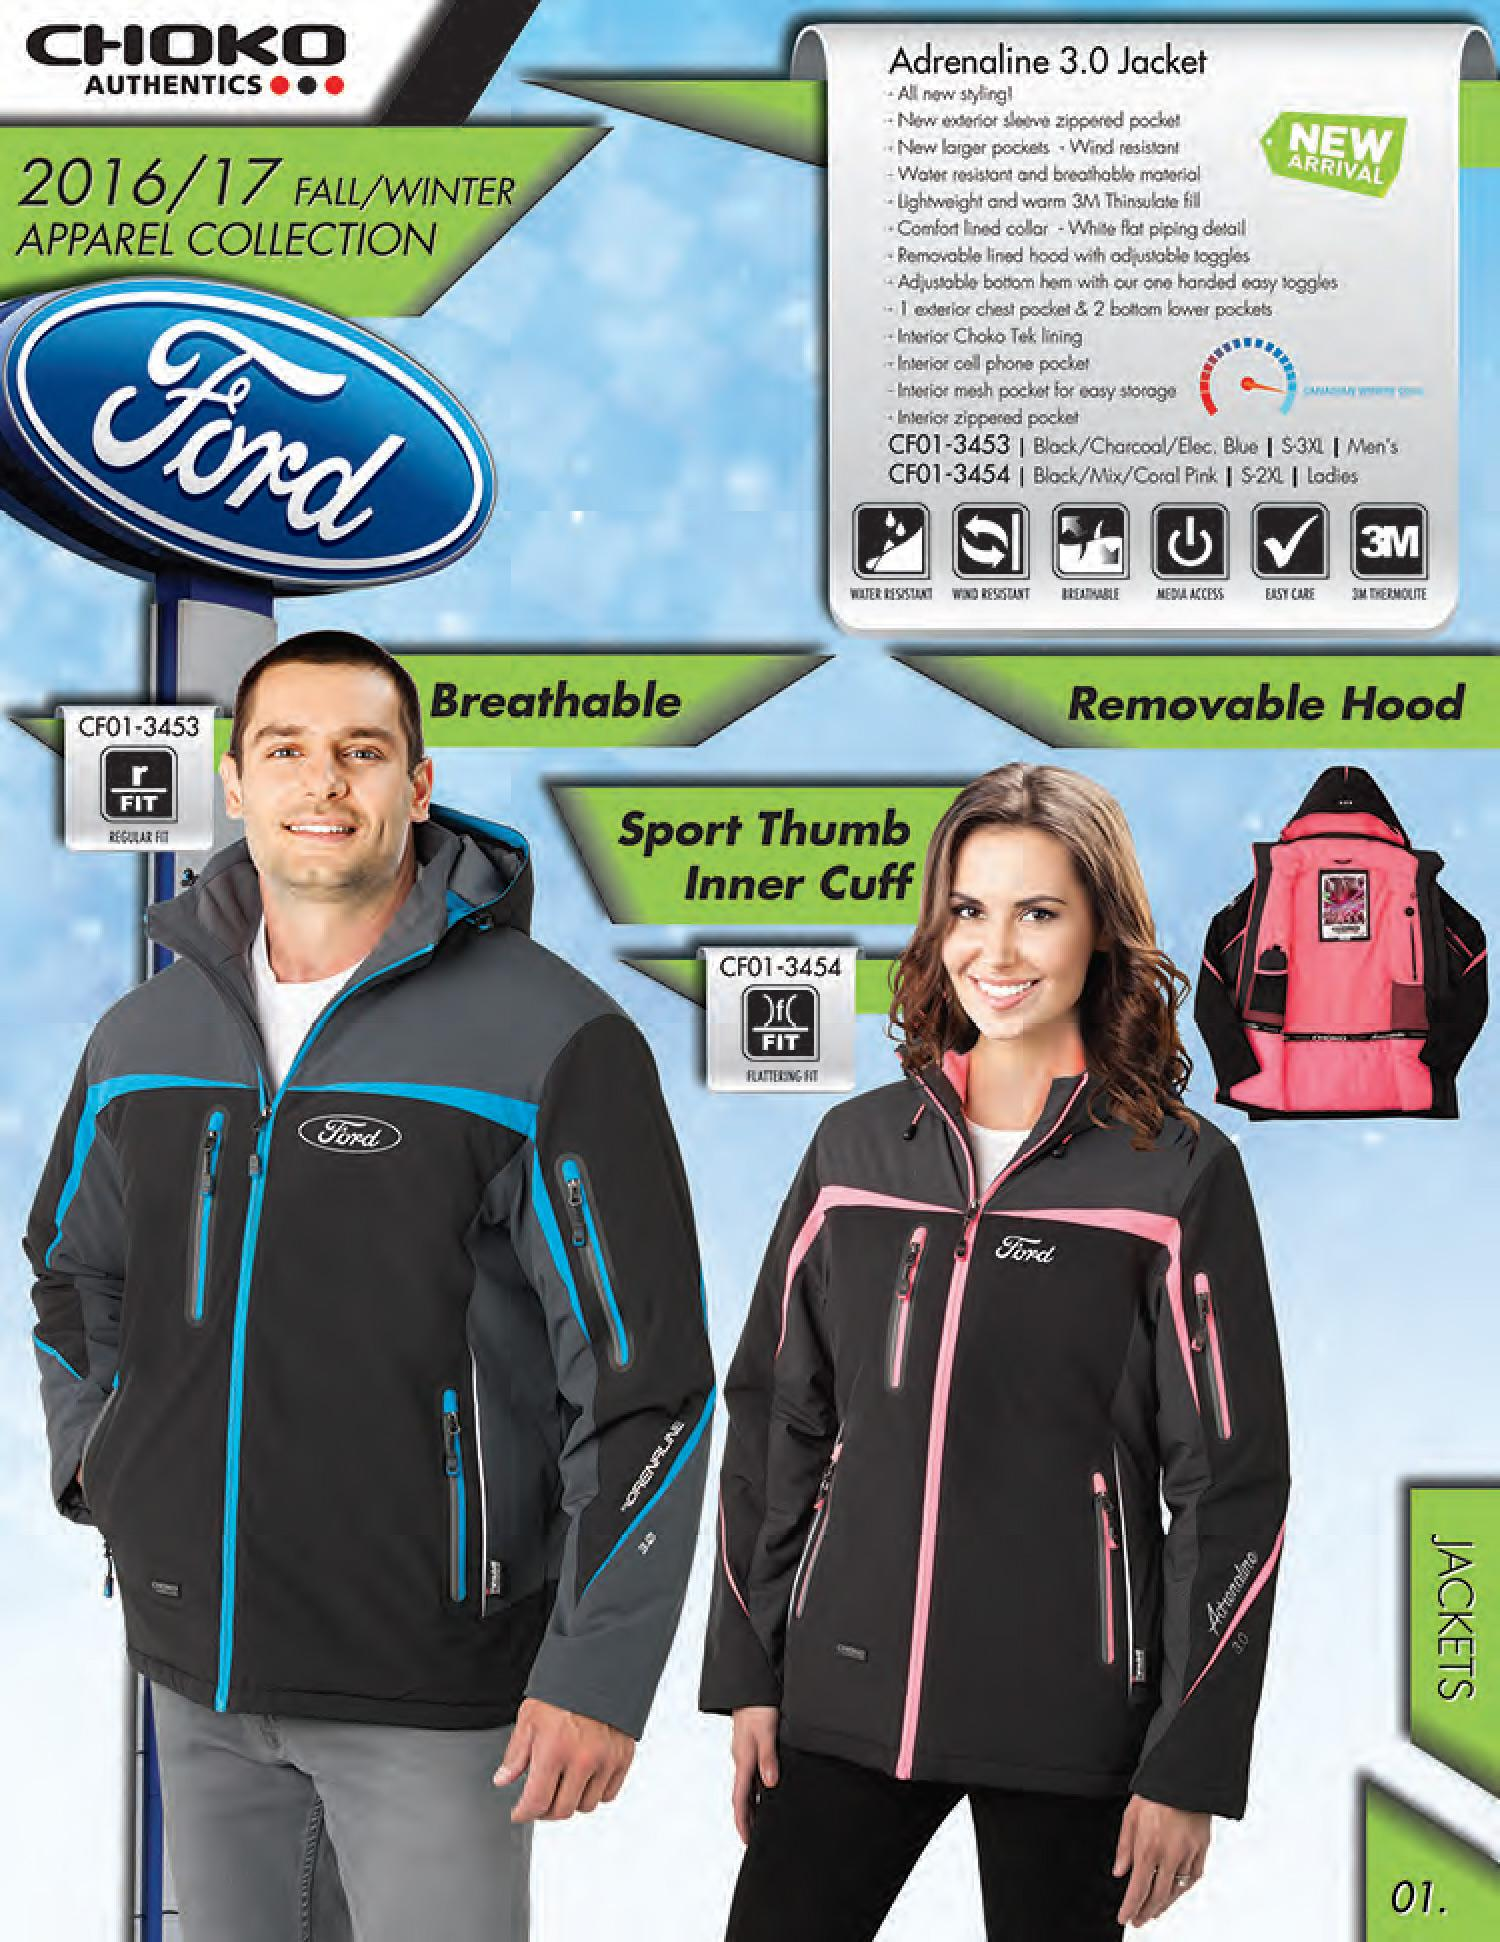 Choko Authentics available from Royal Ford in Yorkton, SK